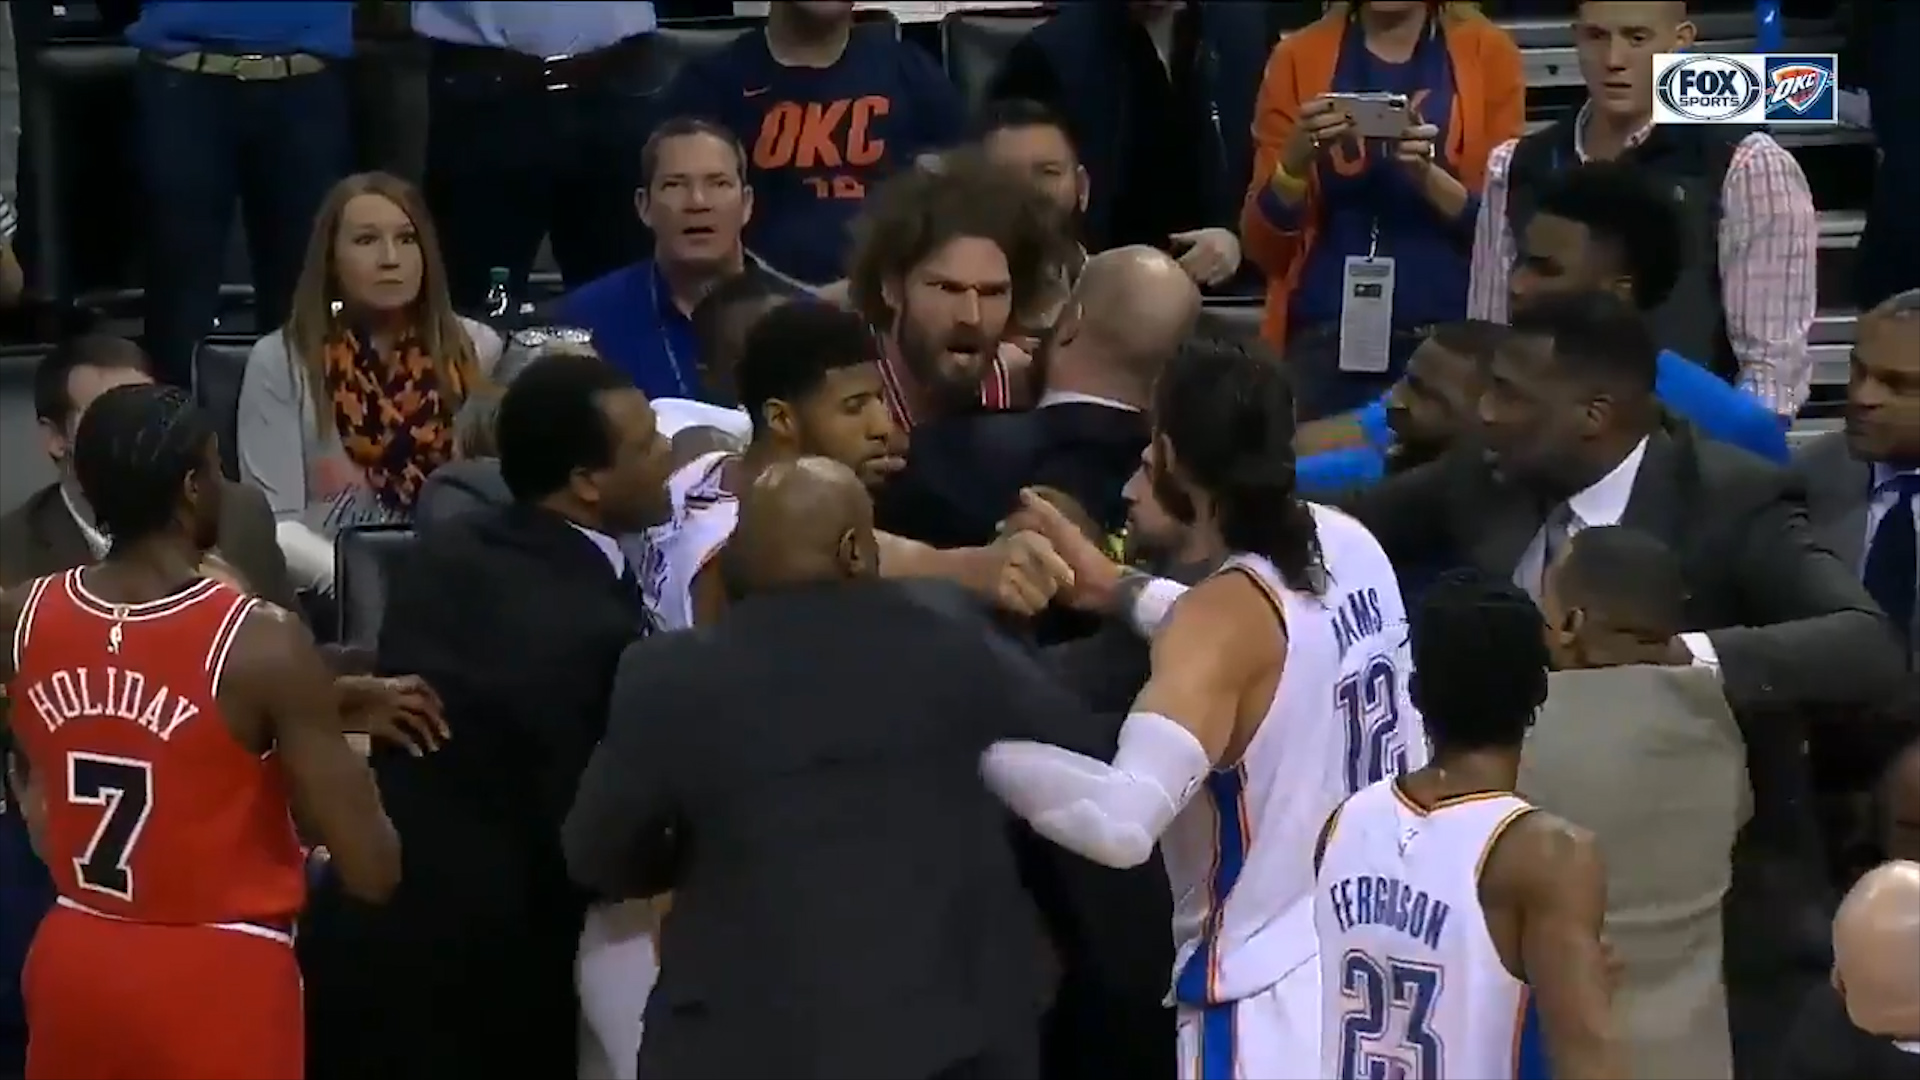 NBA scuffle spills into the crowd